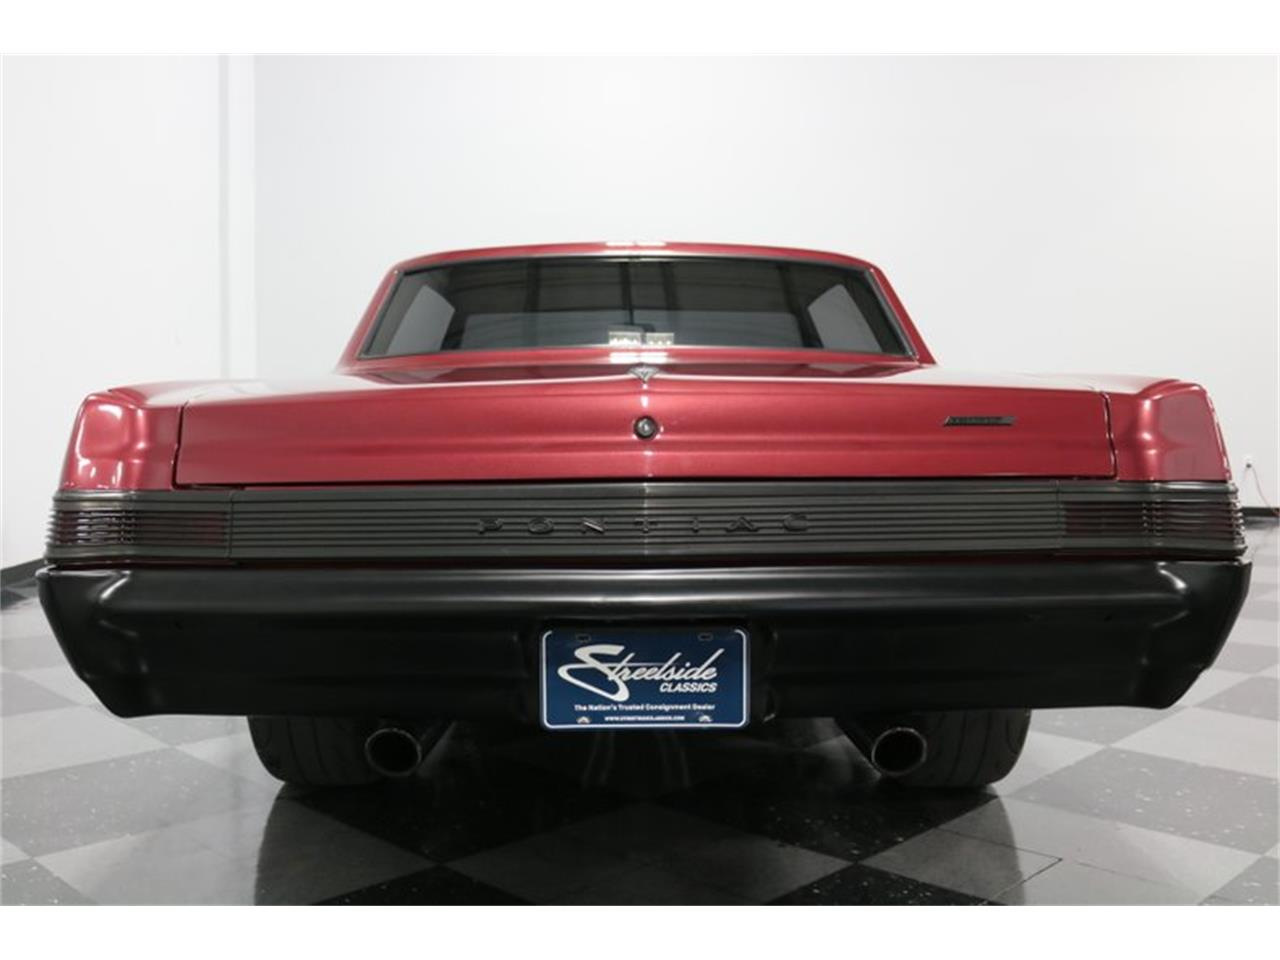 Large Picture of Classic 1965 Pontiac LeMans Offered by Streetside Classics - Dallas / Fort Worth - Q507